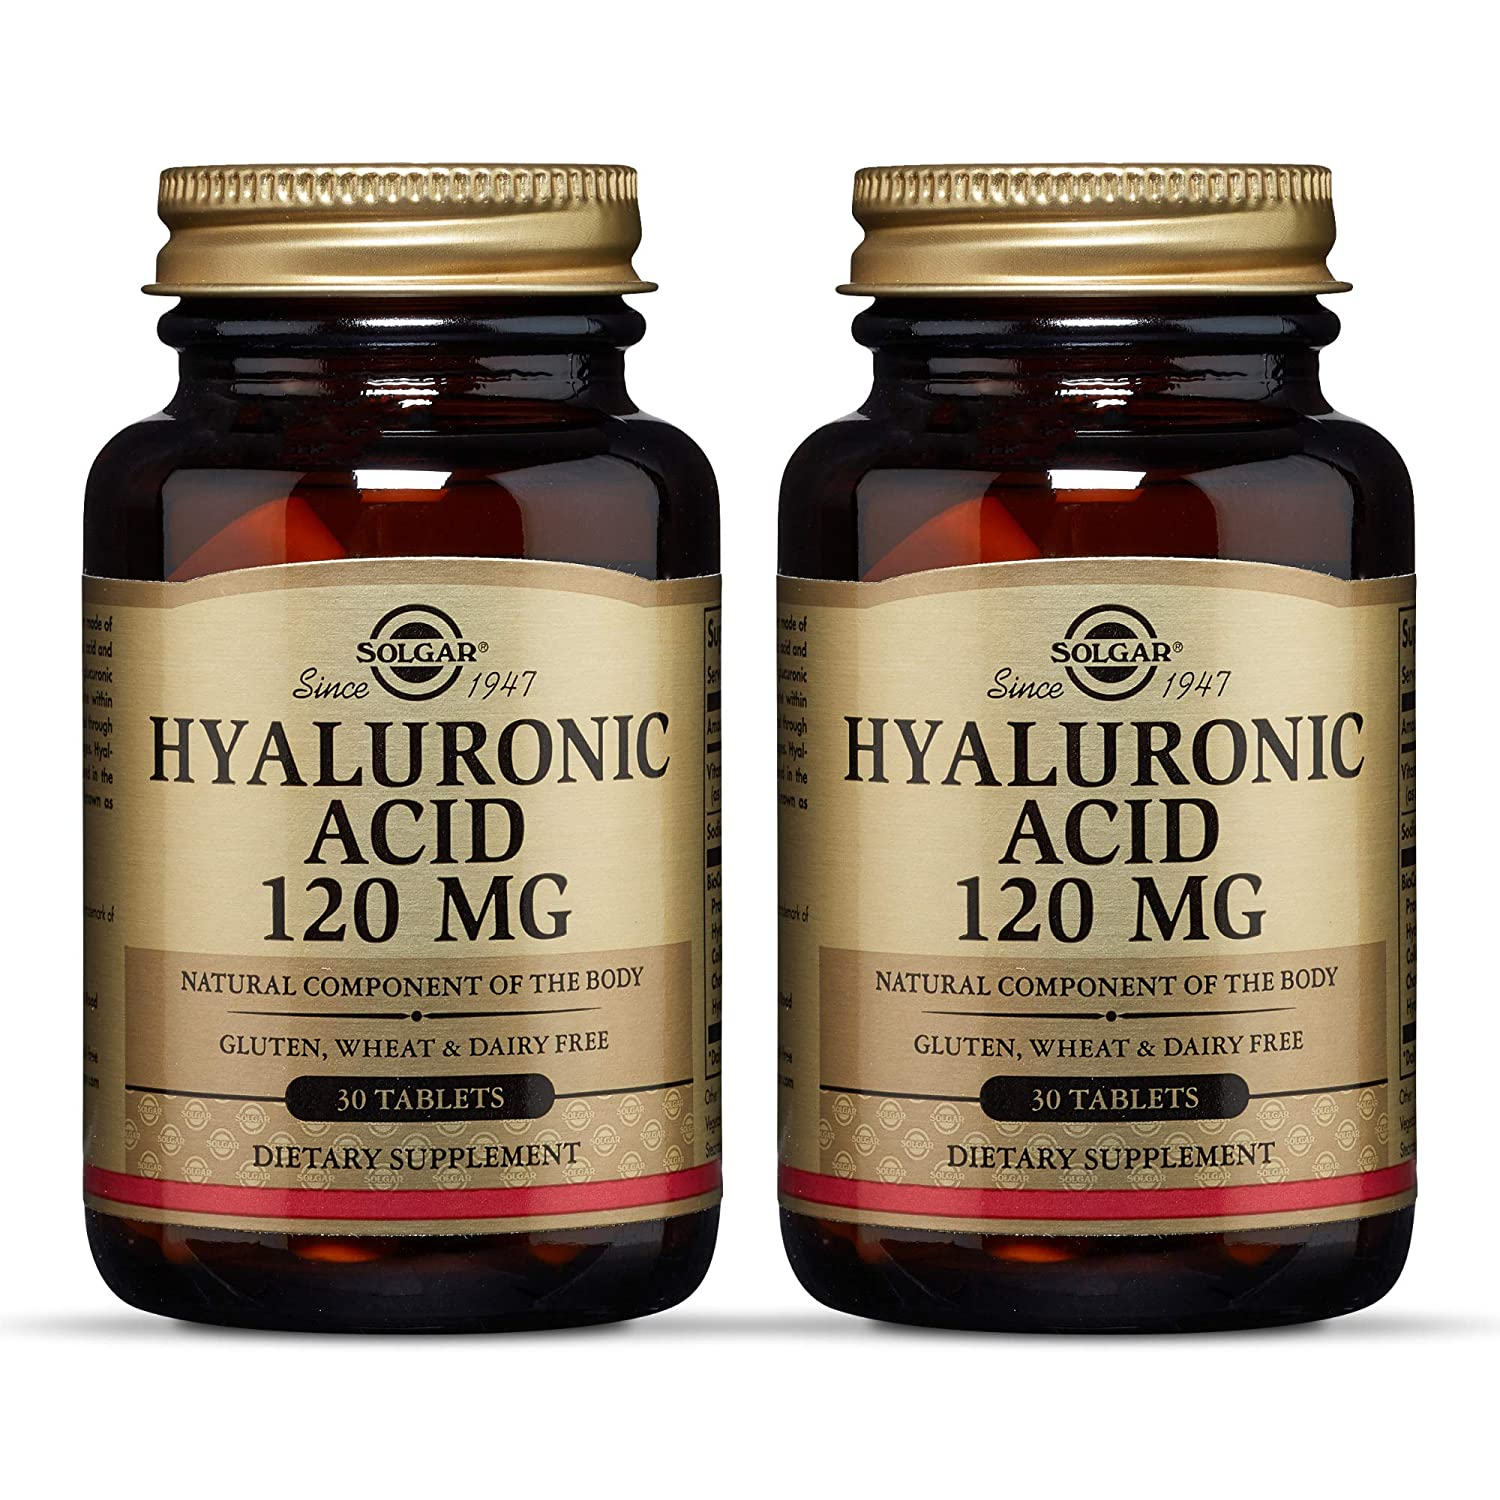 Solgar Hyaluronic Acid 120 mg, 30 Tablets - Pack of 2 - Supports Hair, Skin & Nails - Contains Hydrolyzed Collagen Type 2 & Chondroitin - Non-GMO, Gluten Free, Dairy Free - 60 Total Servings